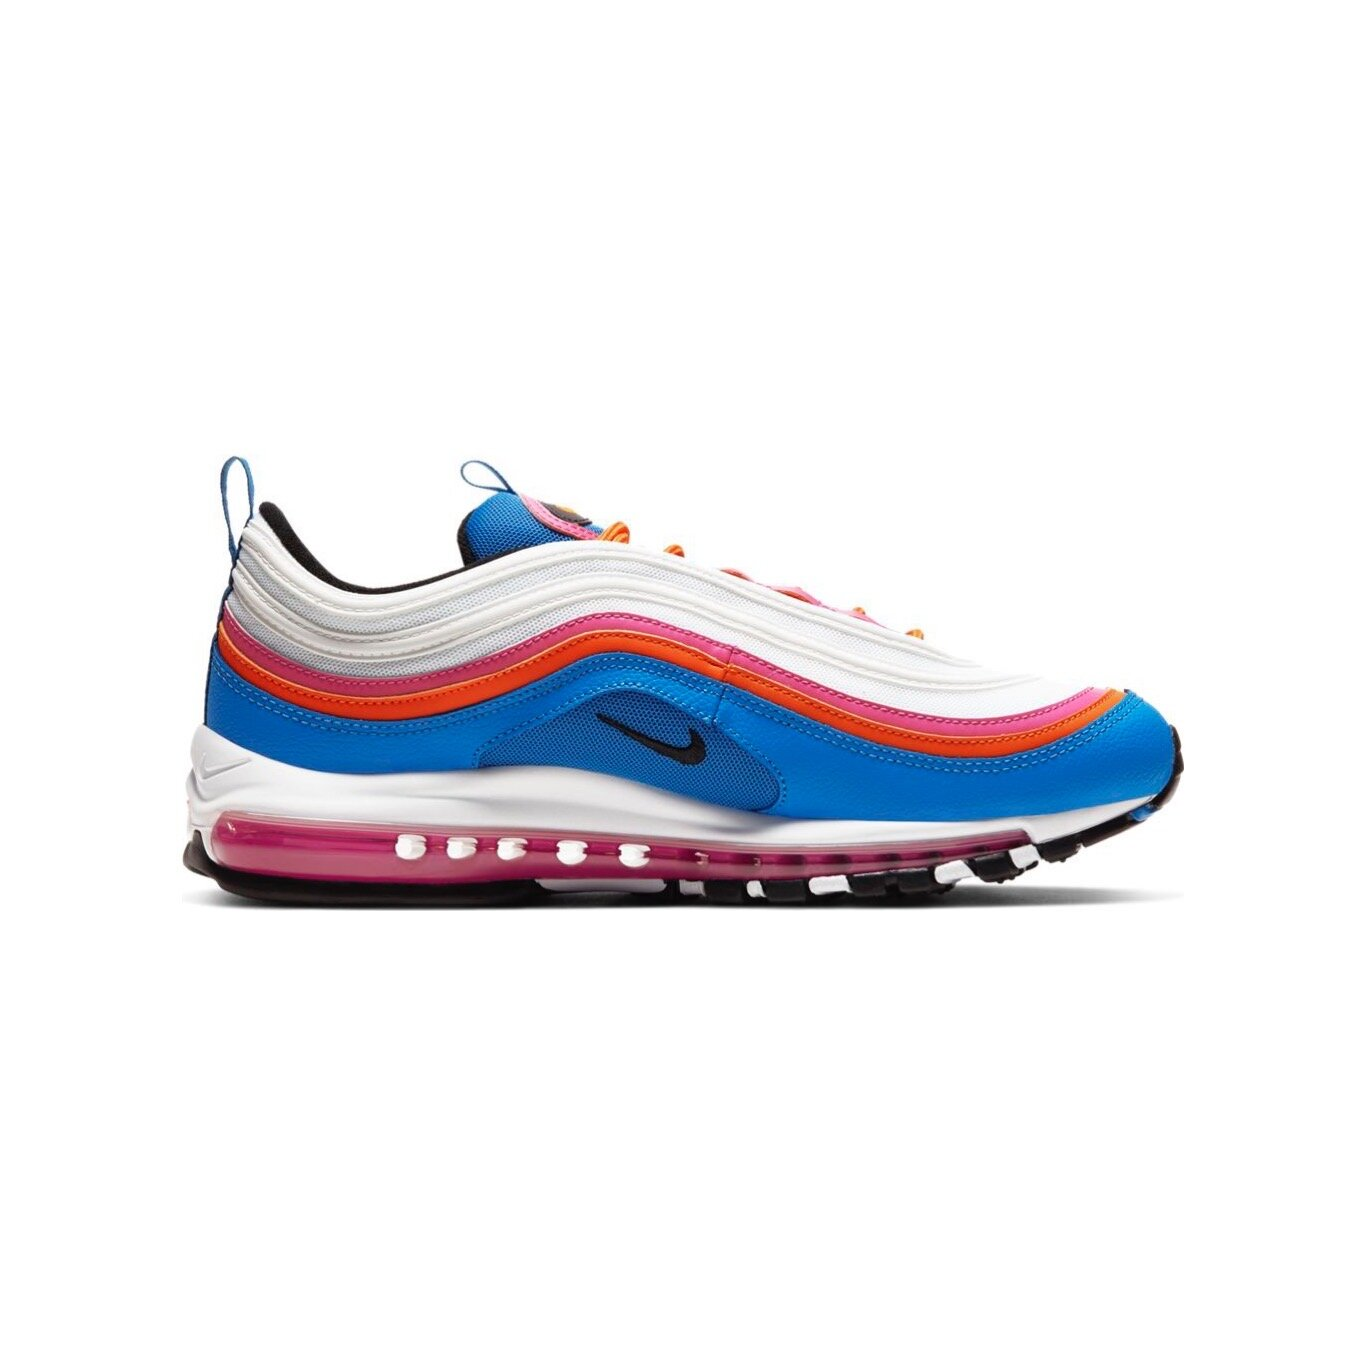 Nike Air Max 97 In White Black Active Fuchsia Major